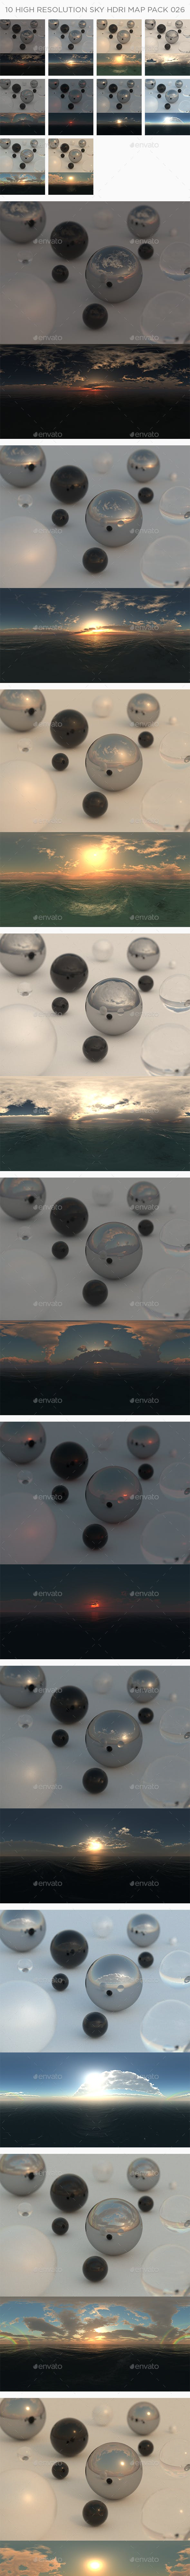 10 High Resolution Sky HDRi Maps Pack 026 - 3DOcean Item for Sale